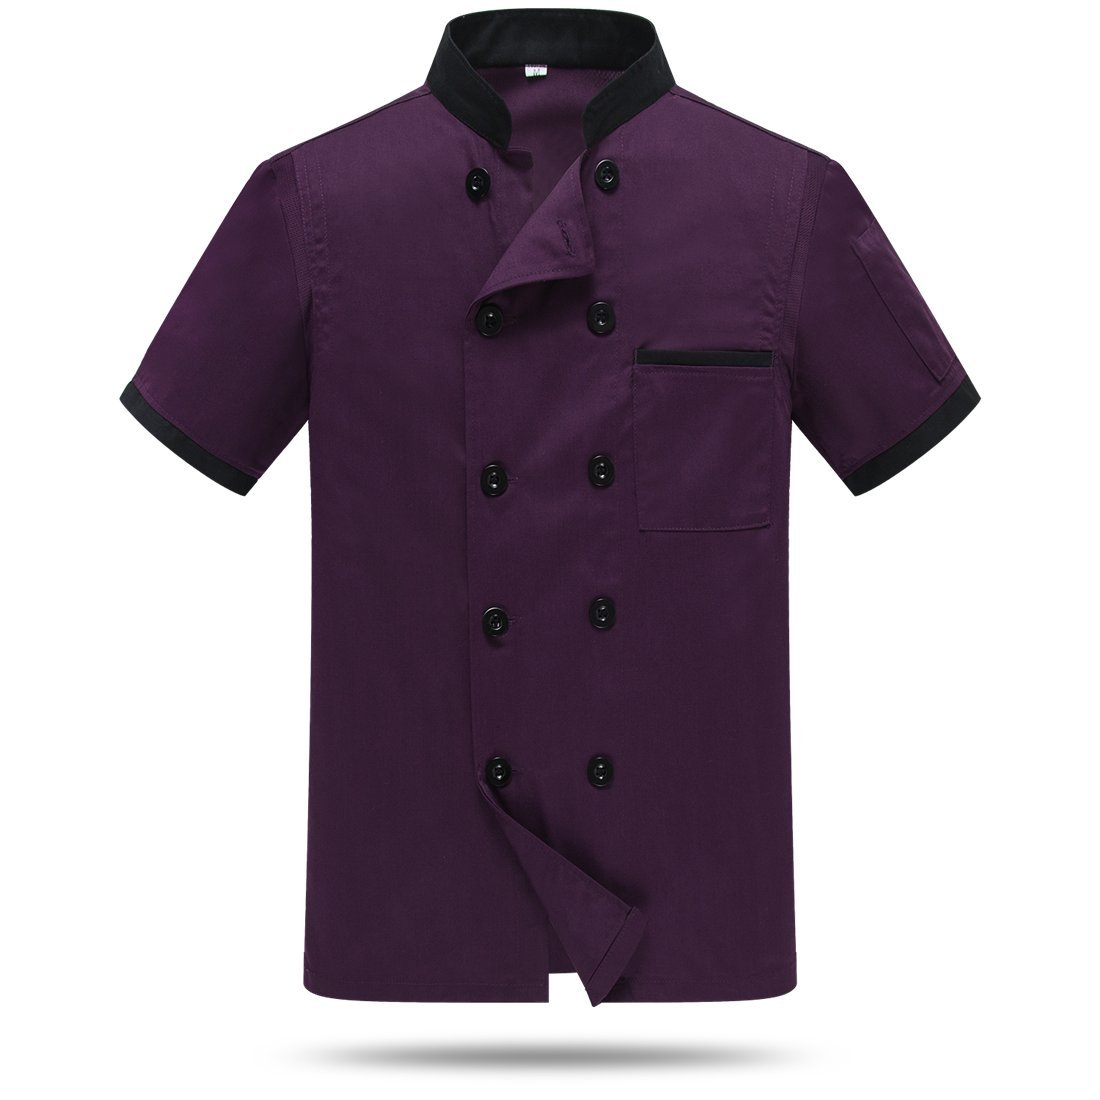 WAIWAIZUI Chef Jackets Waiter Coat Short Sleeves Back and Underarm Mesh Size M (Label:XXL) Purple